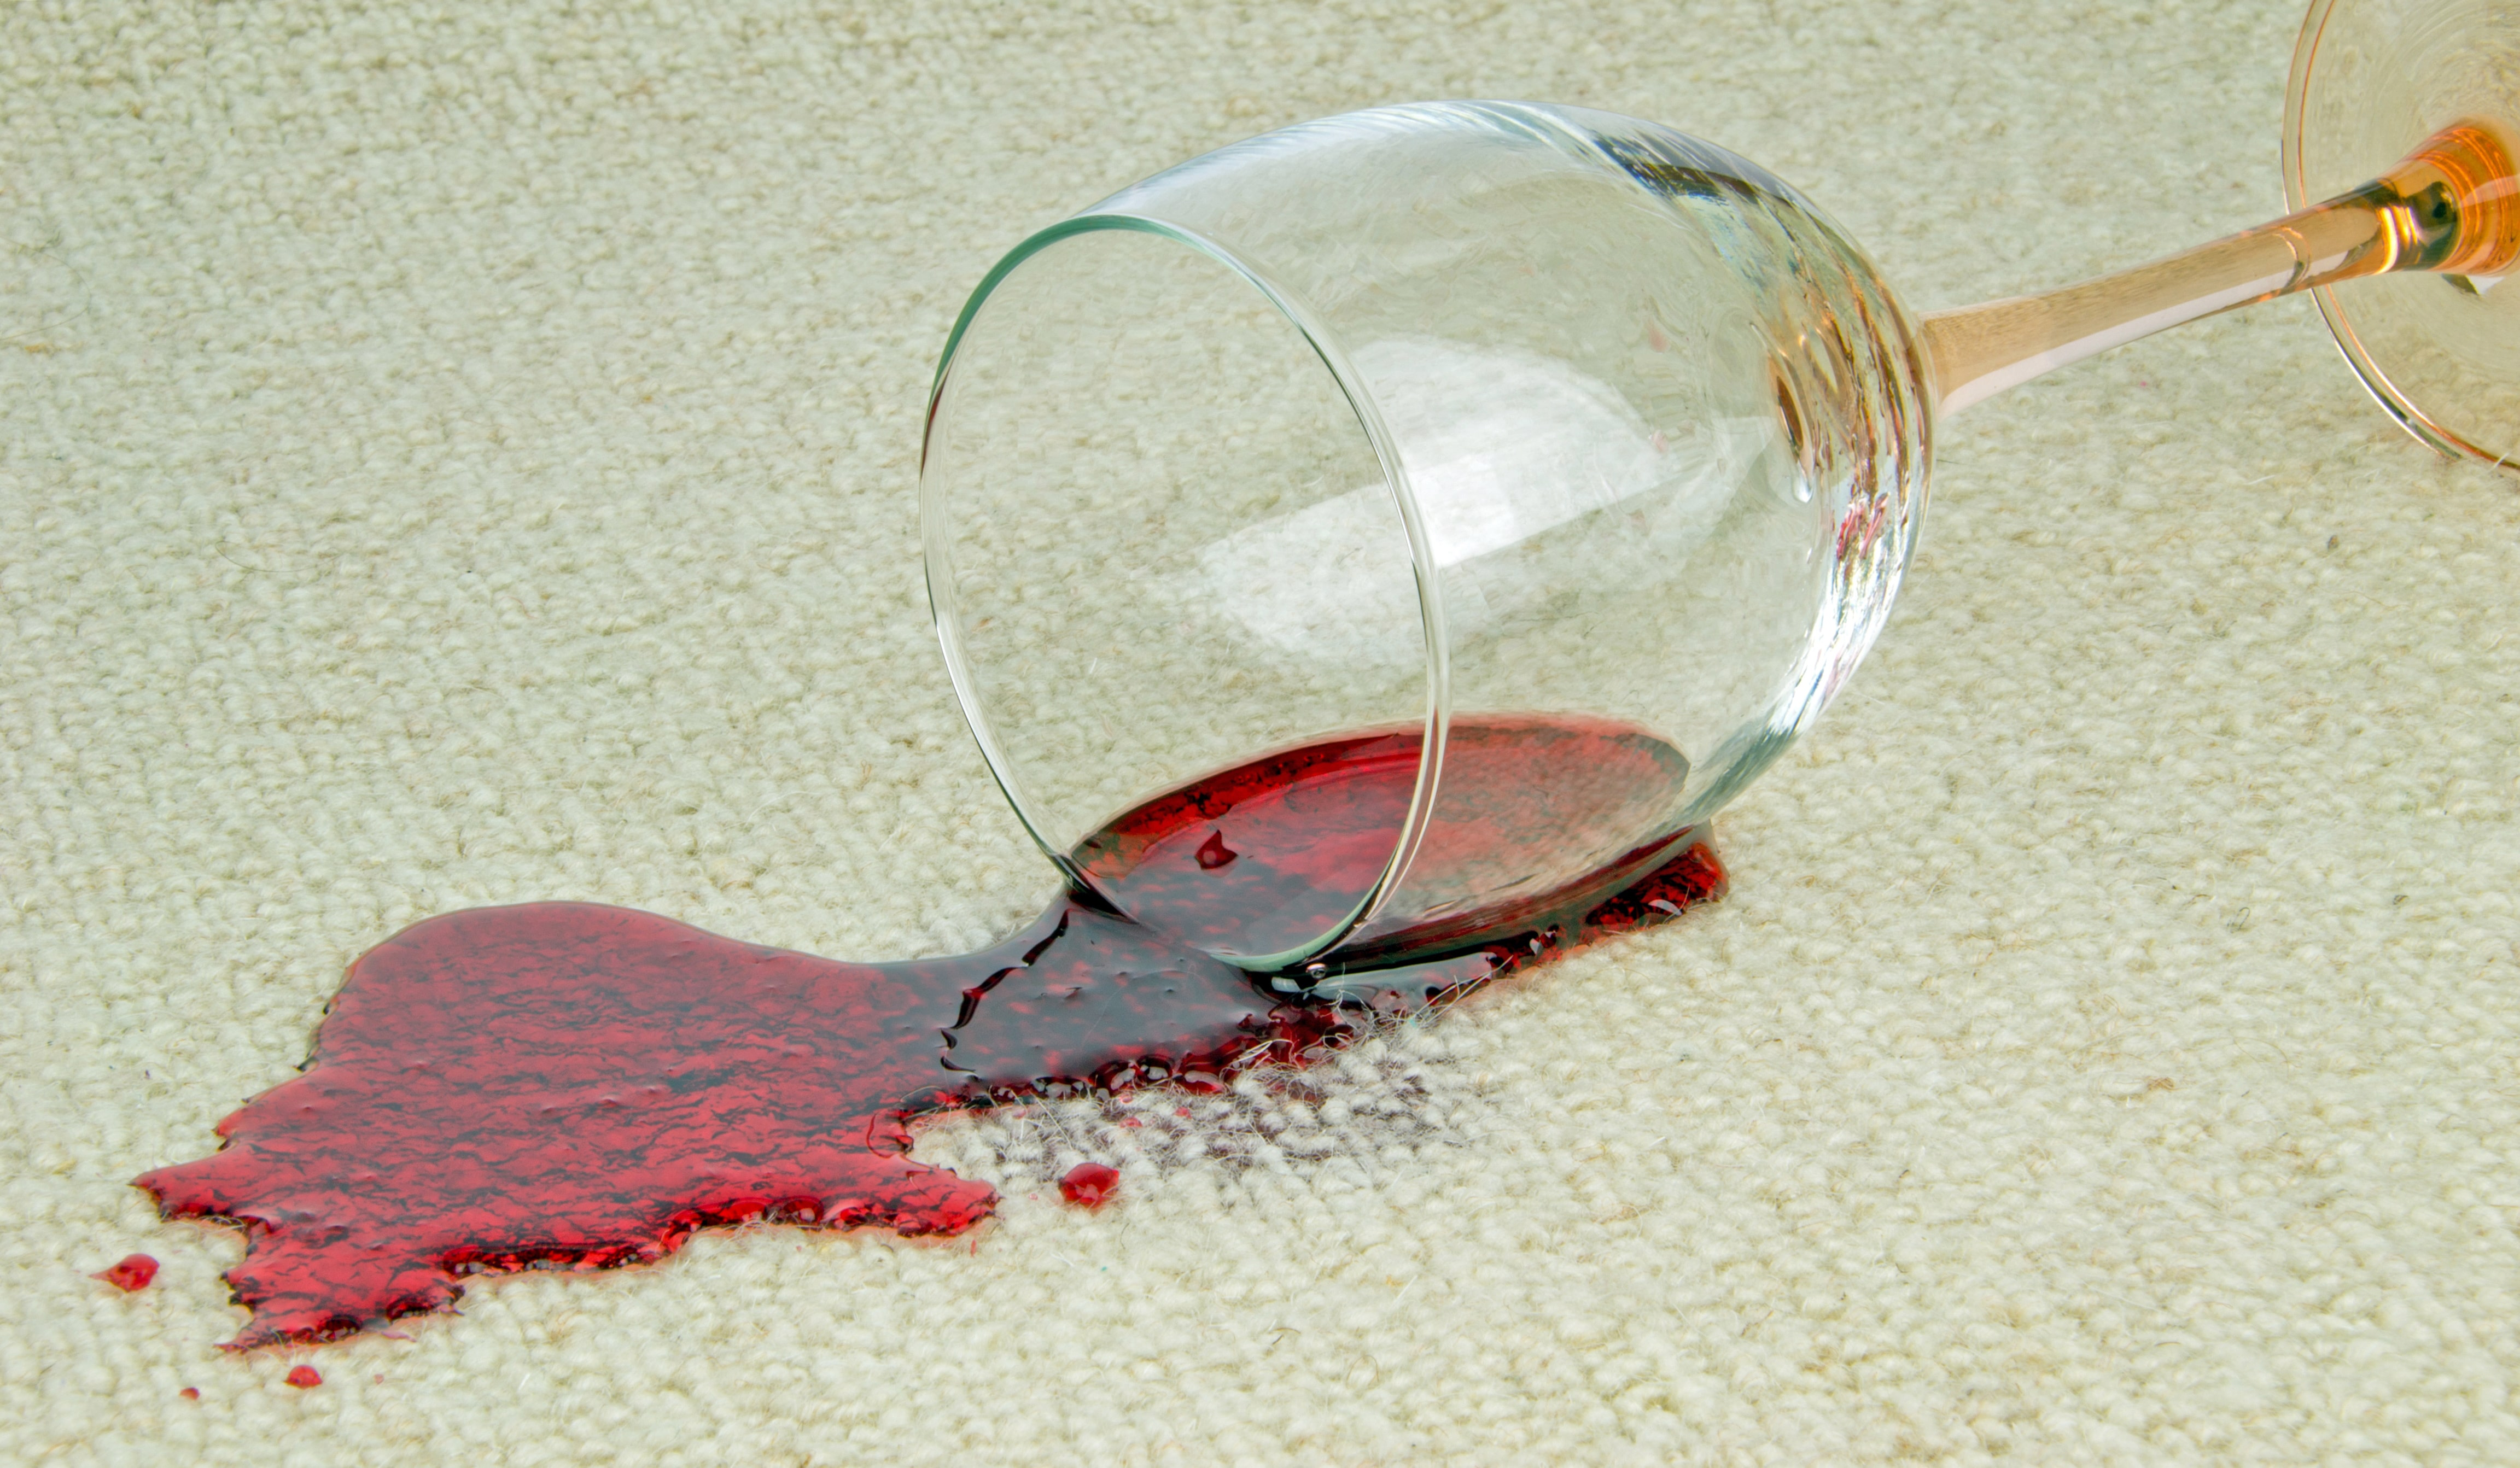 wine spilled on carpet